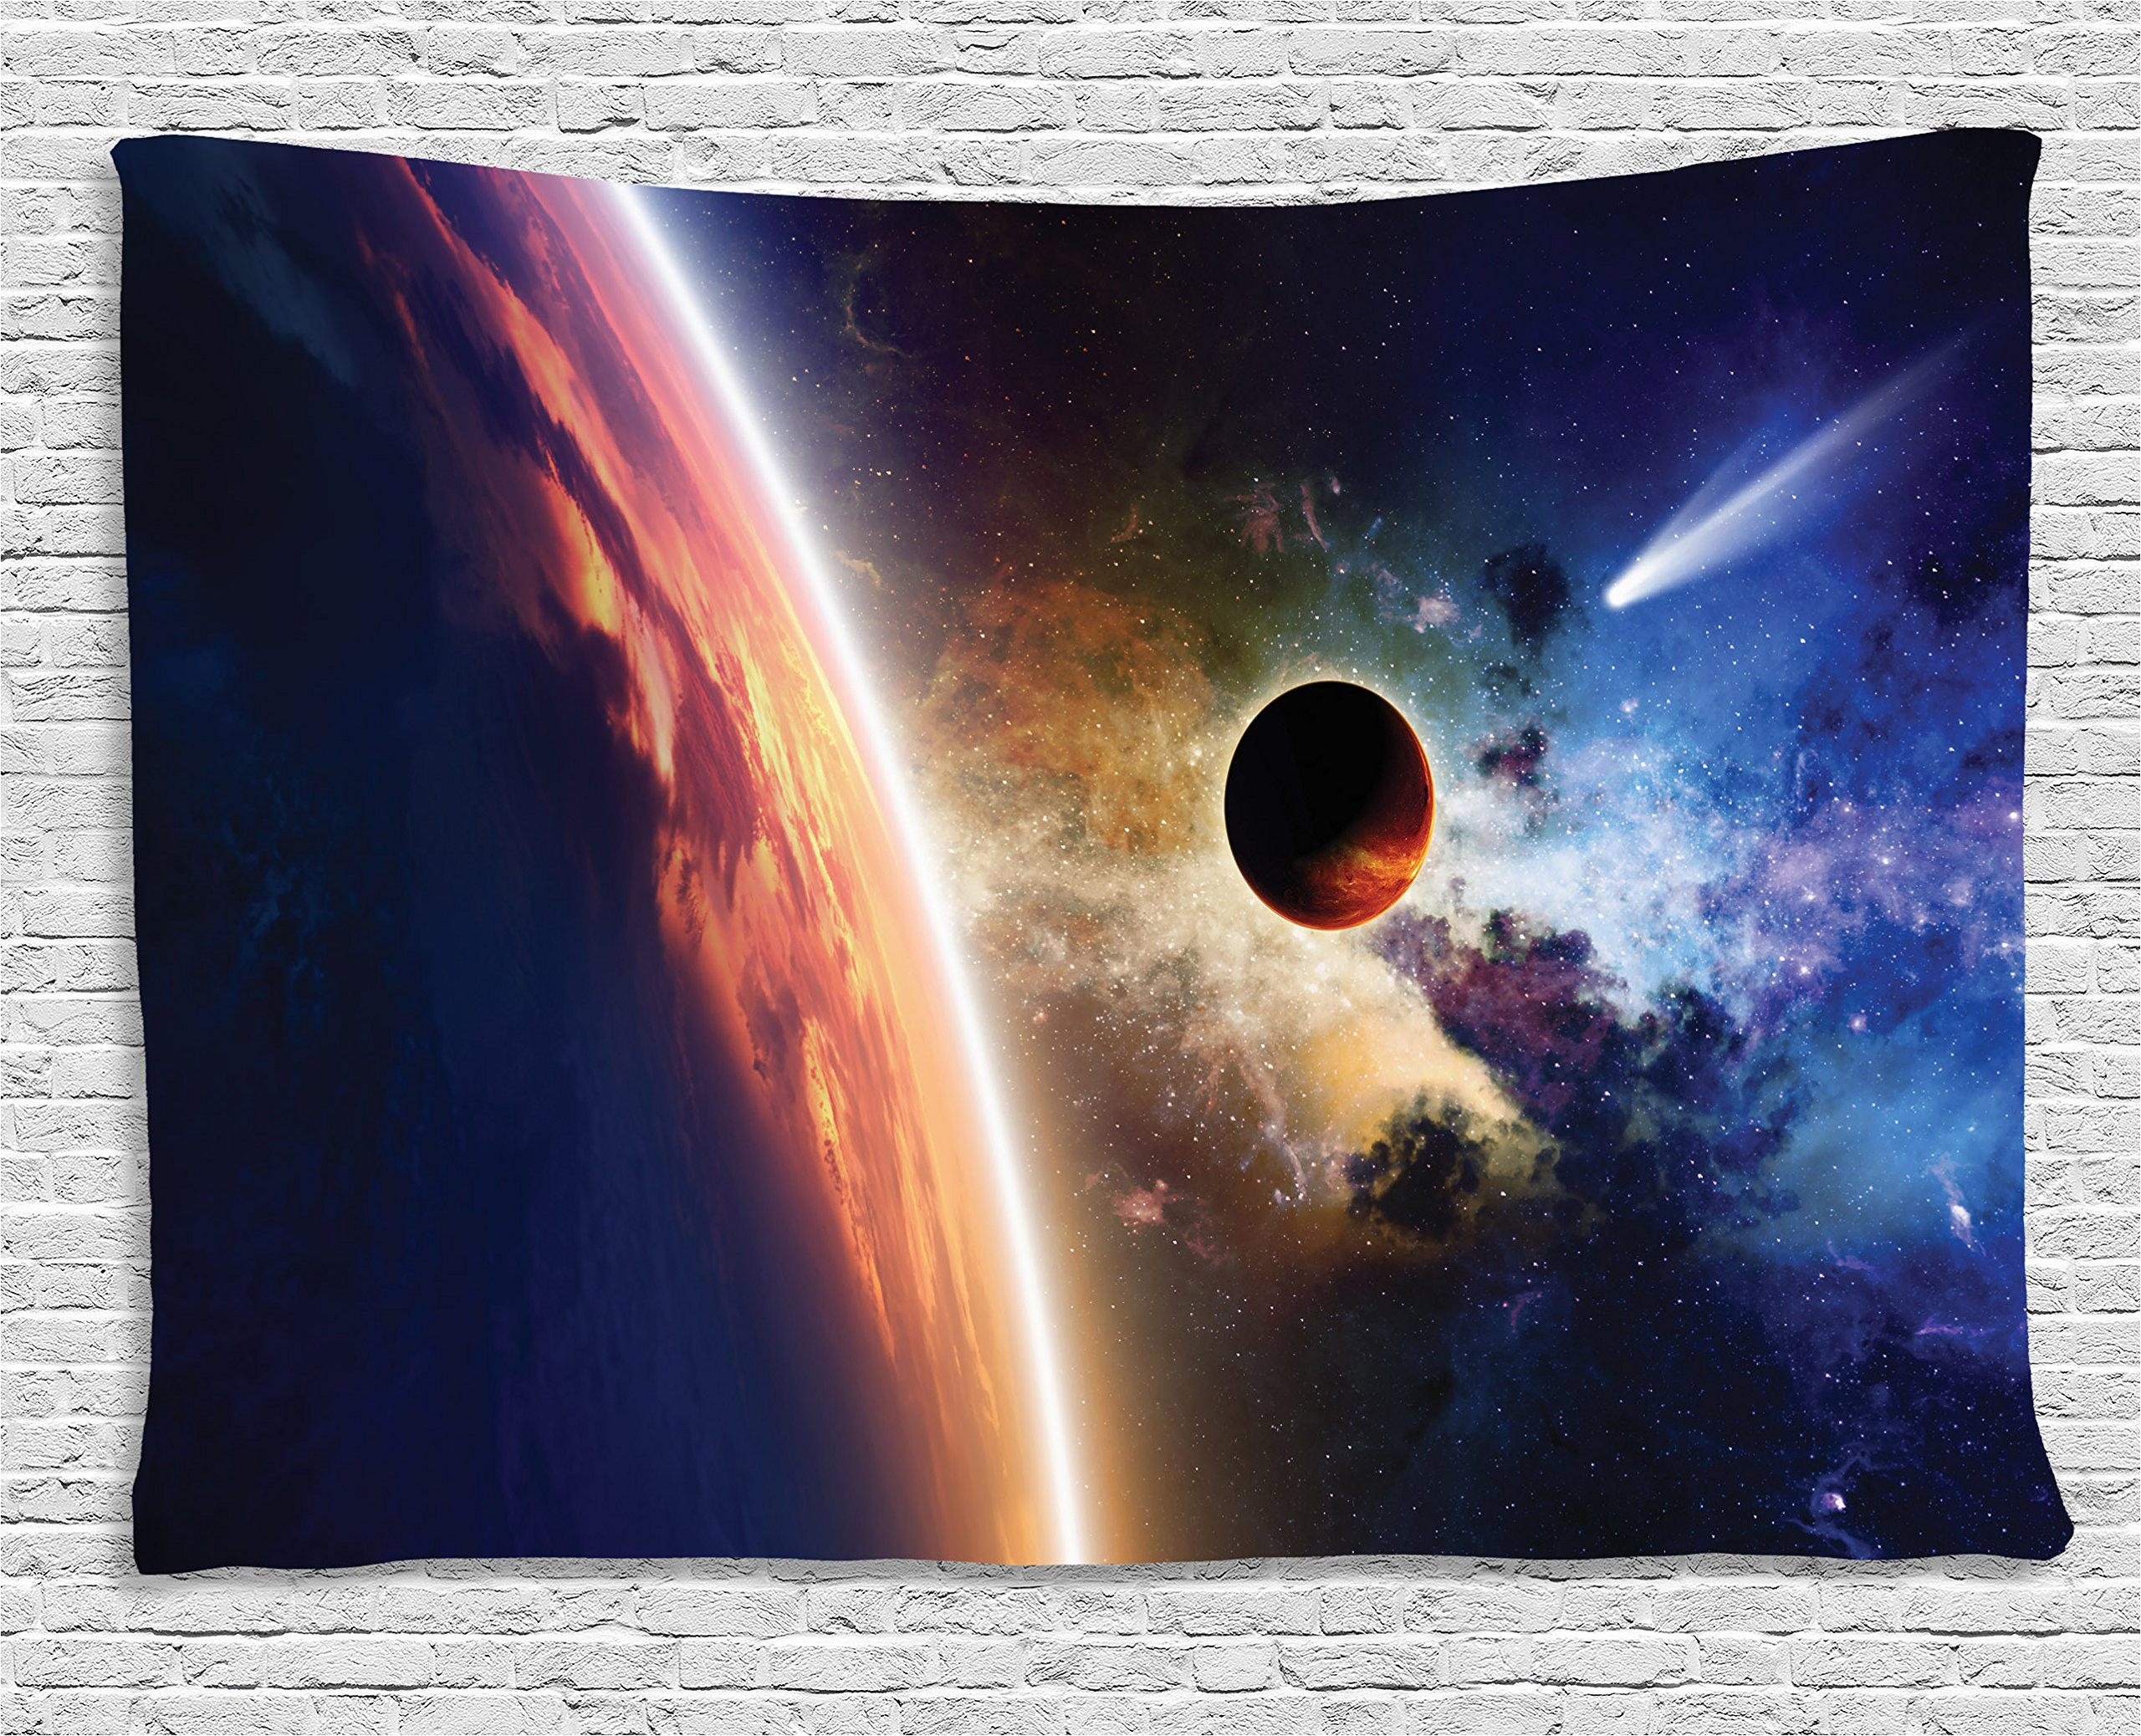 Ambesonne Galaxy Tapestry Earth Decor, Comet Approaches Planet Scientific Facts Realities in Solar System World Scene, Bedroom Living Room Dorm Art Wall Hanging, 80 W X 60 L Inch, Dark Blue